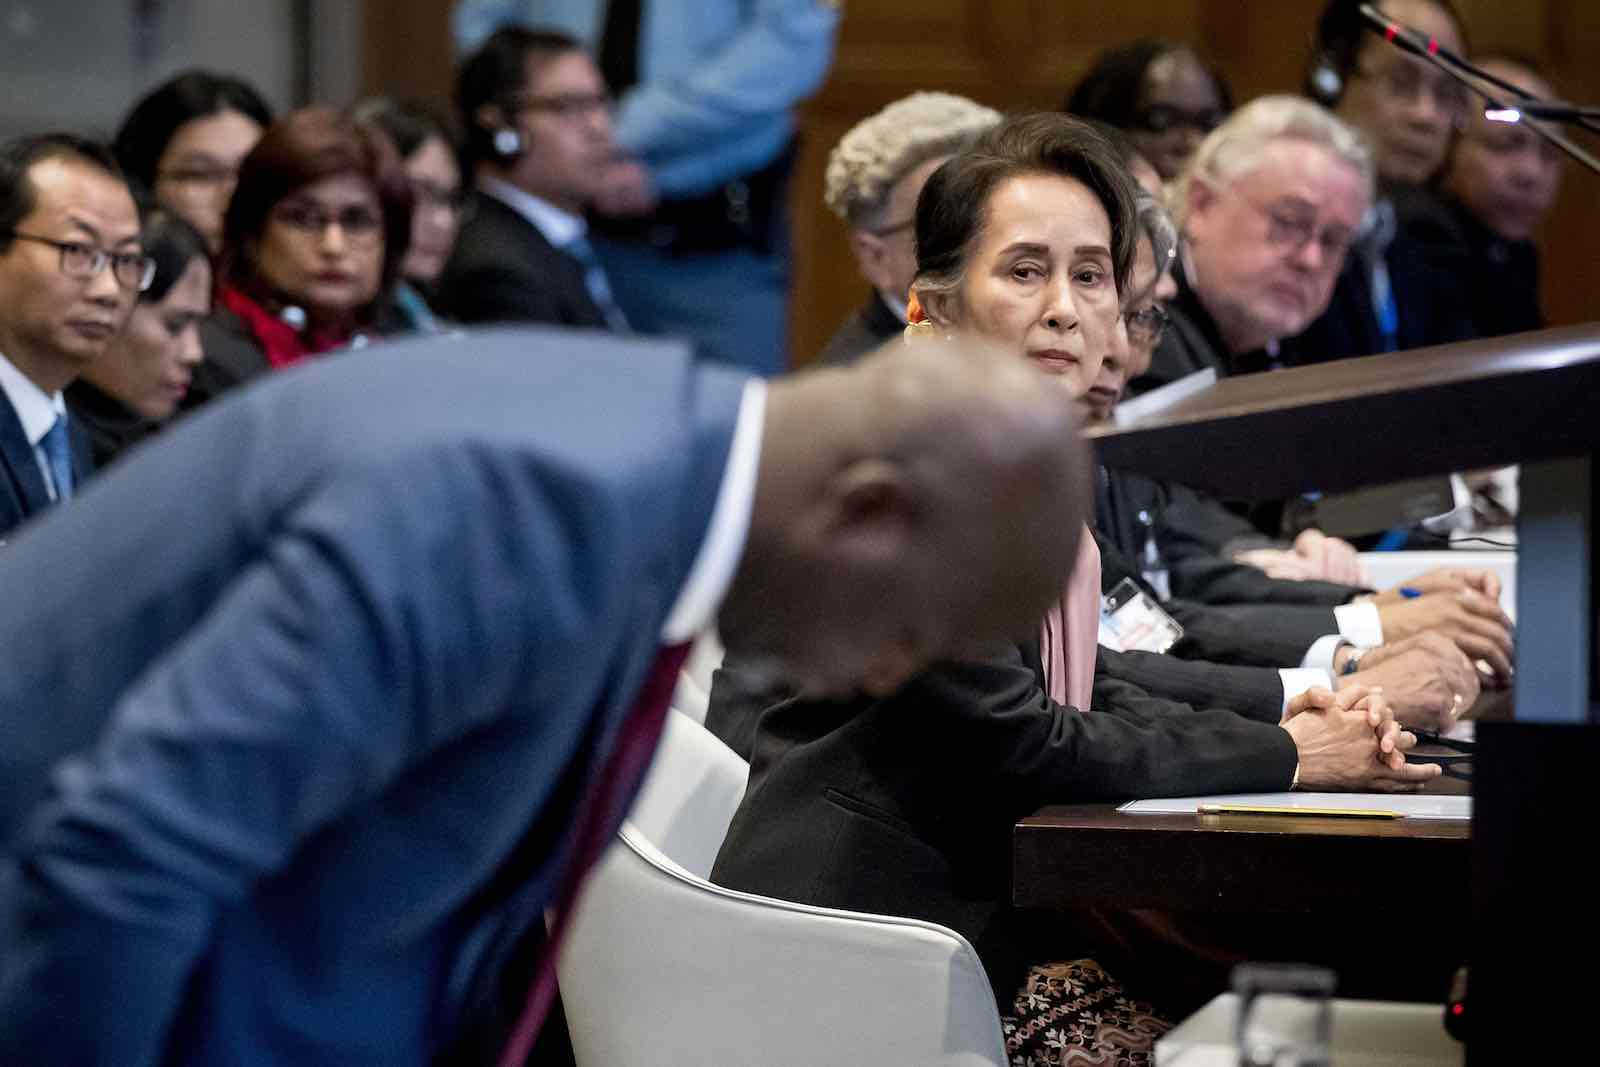 Myanmar's State Counsellor Aung San Suu Kyi looks on as Gambian Justice Minister Abubacarr Tambadou appears before International Court of Justice on 10 December, The Hague (Photo: Photo by Koen Van Weel/AFP/Getty)